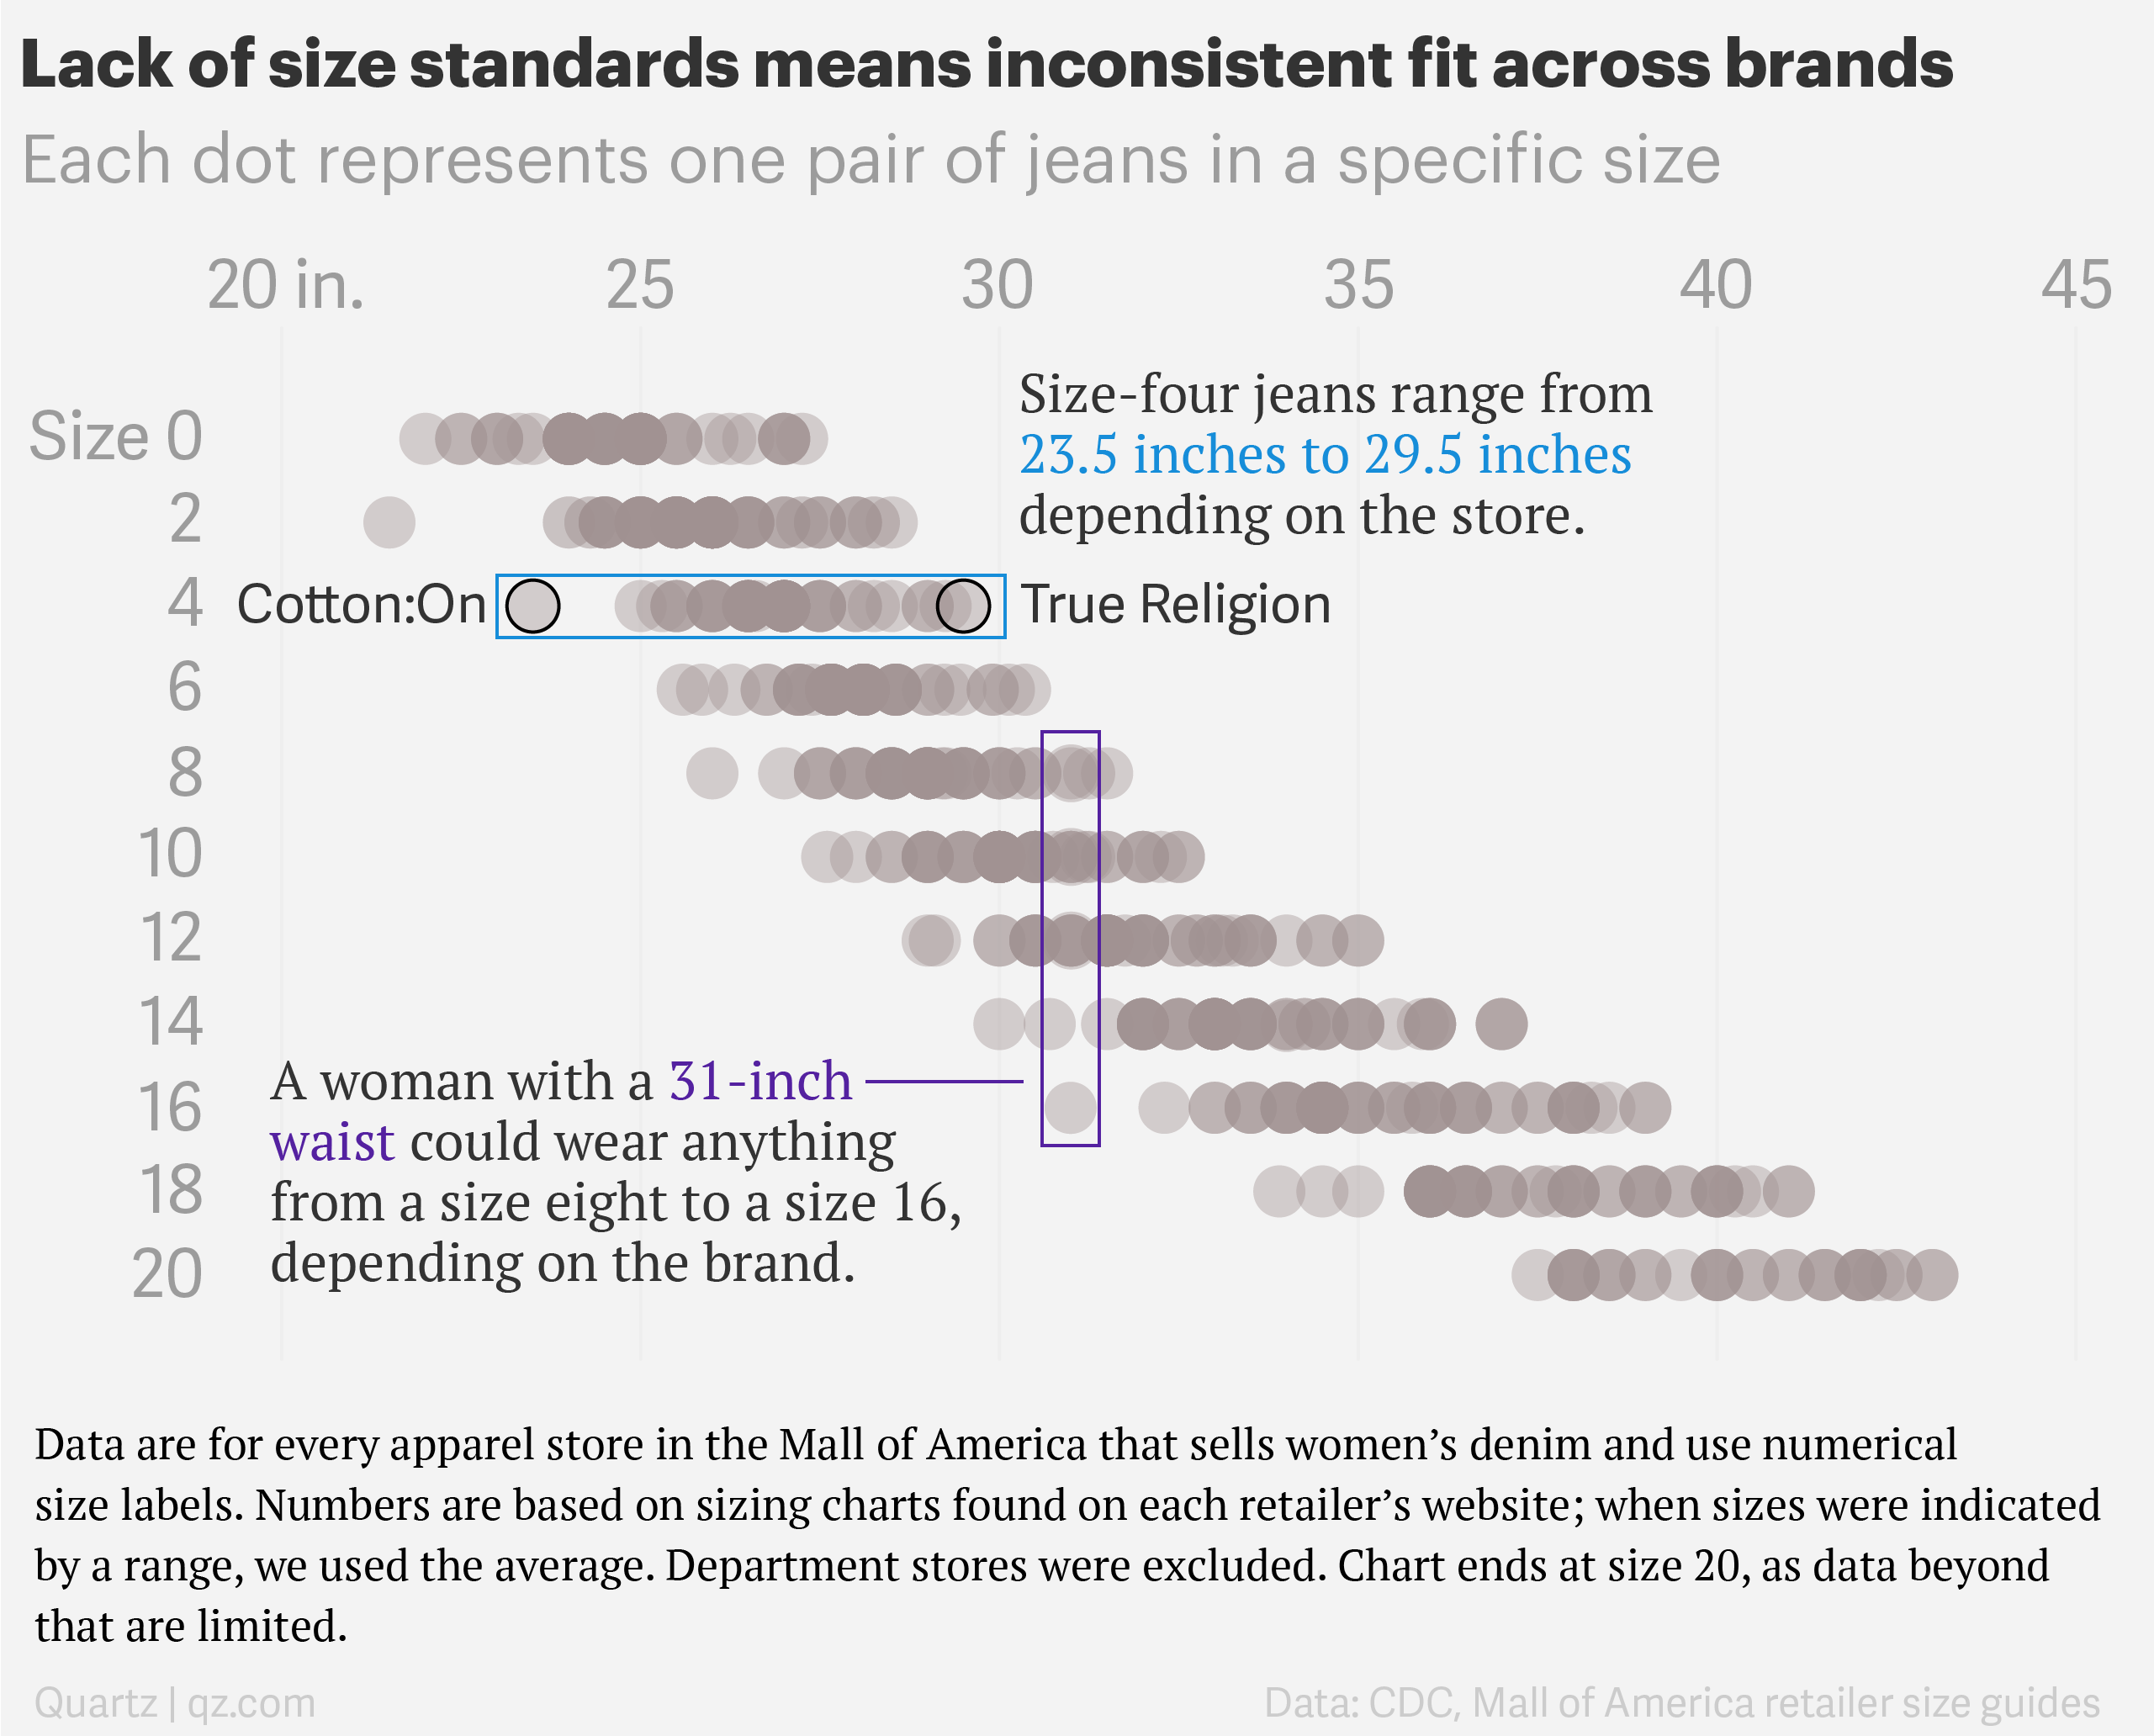 What is the average jean size for women?